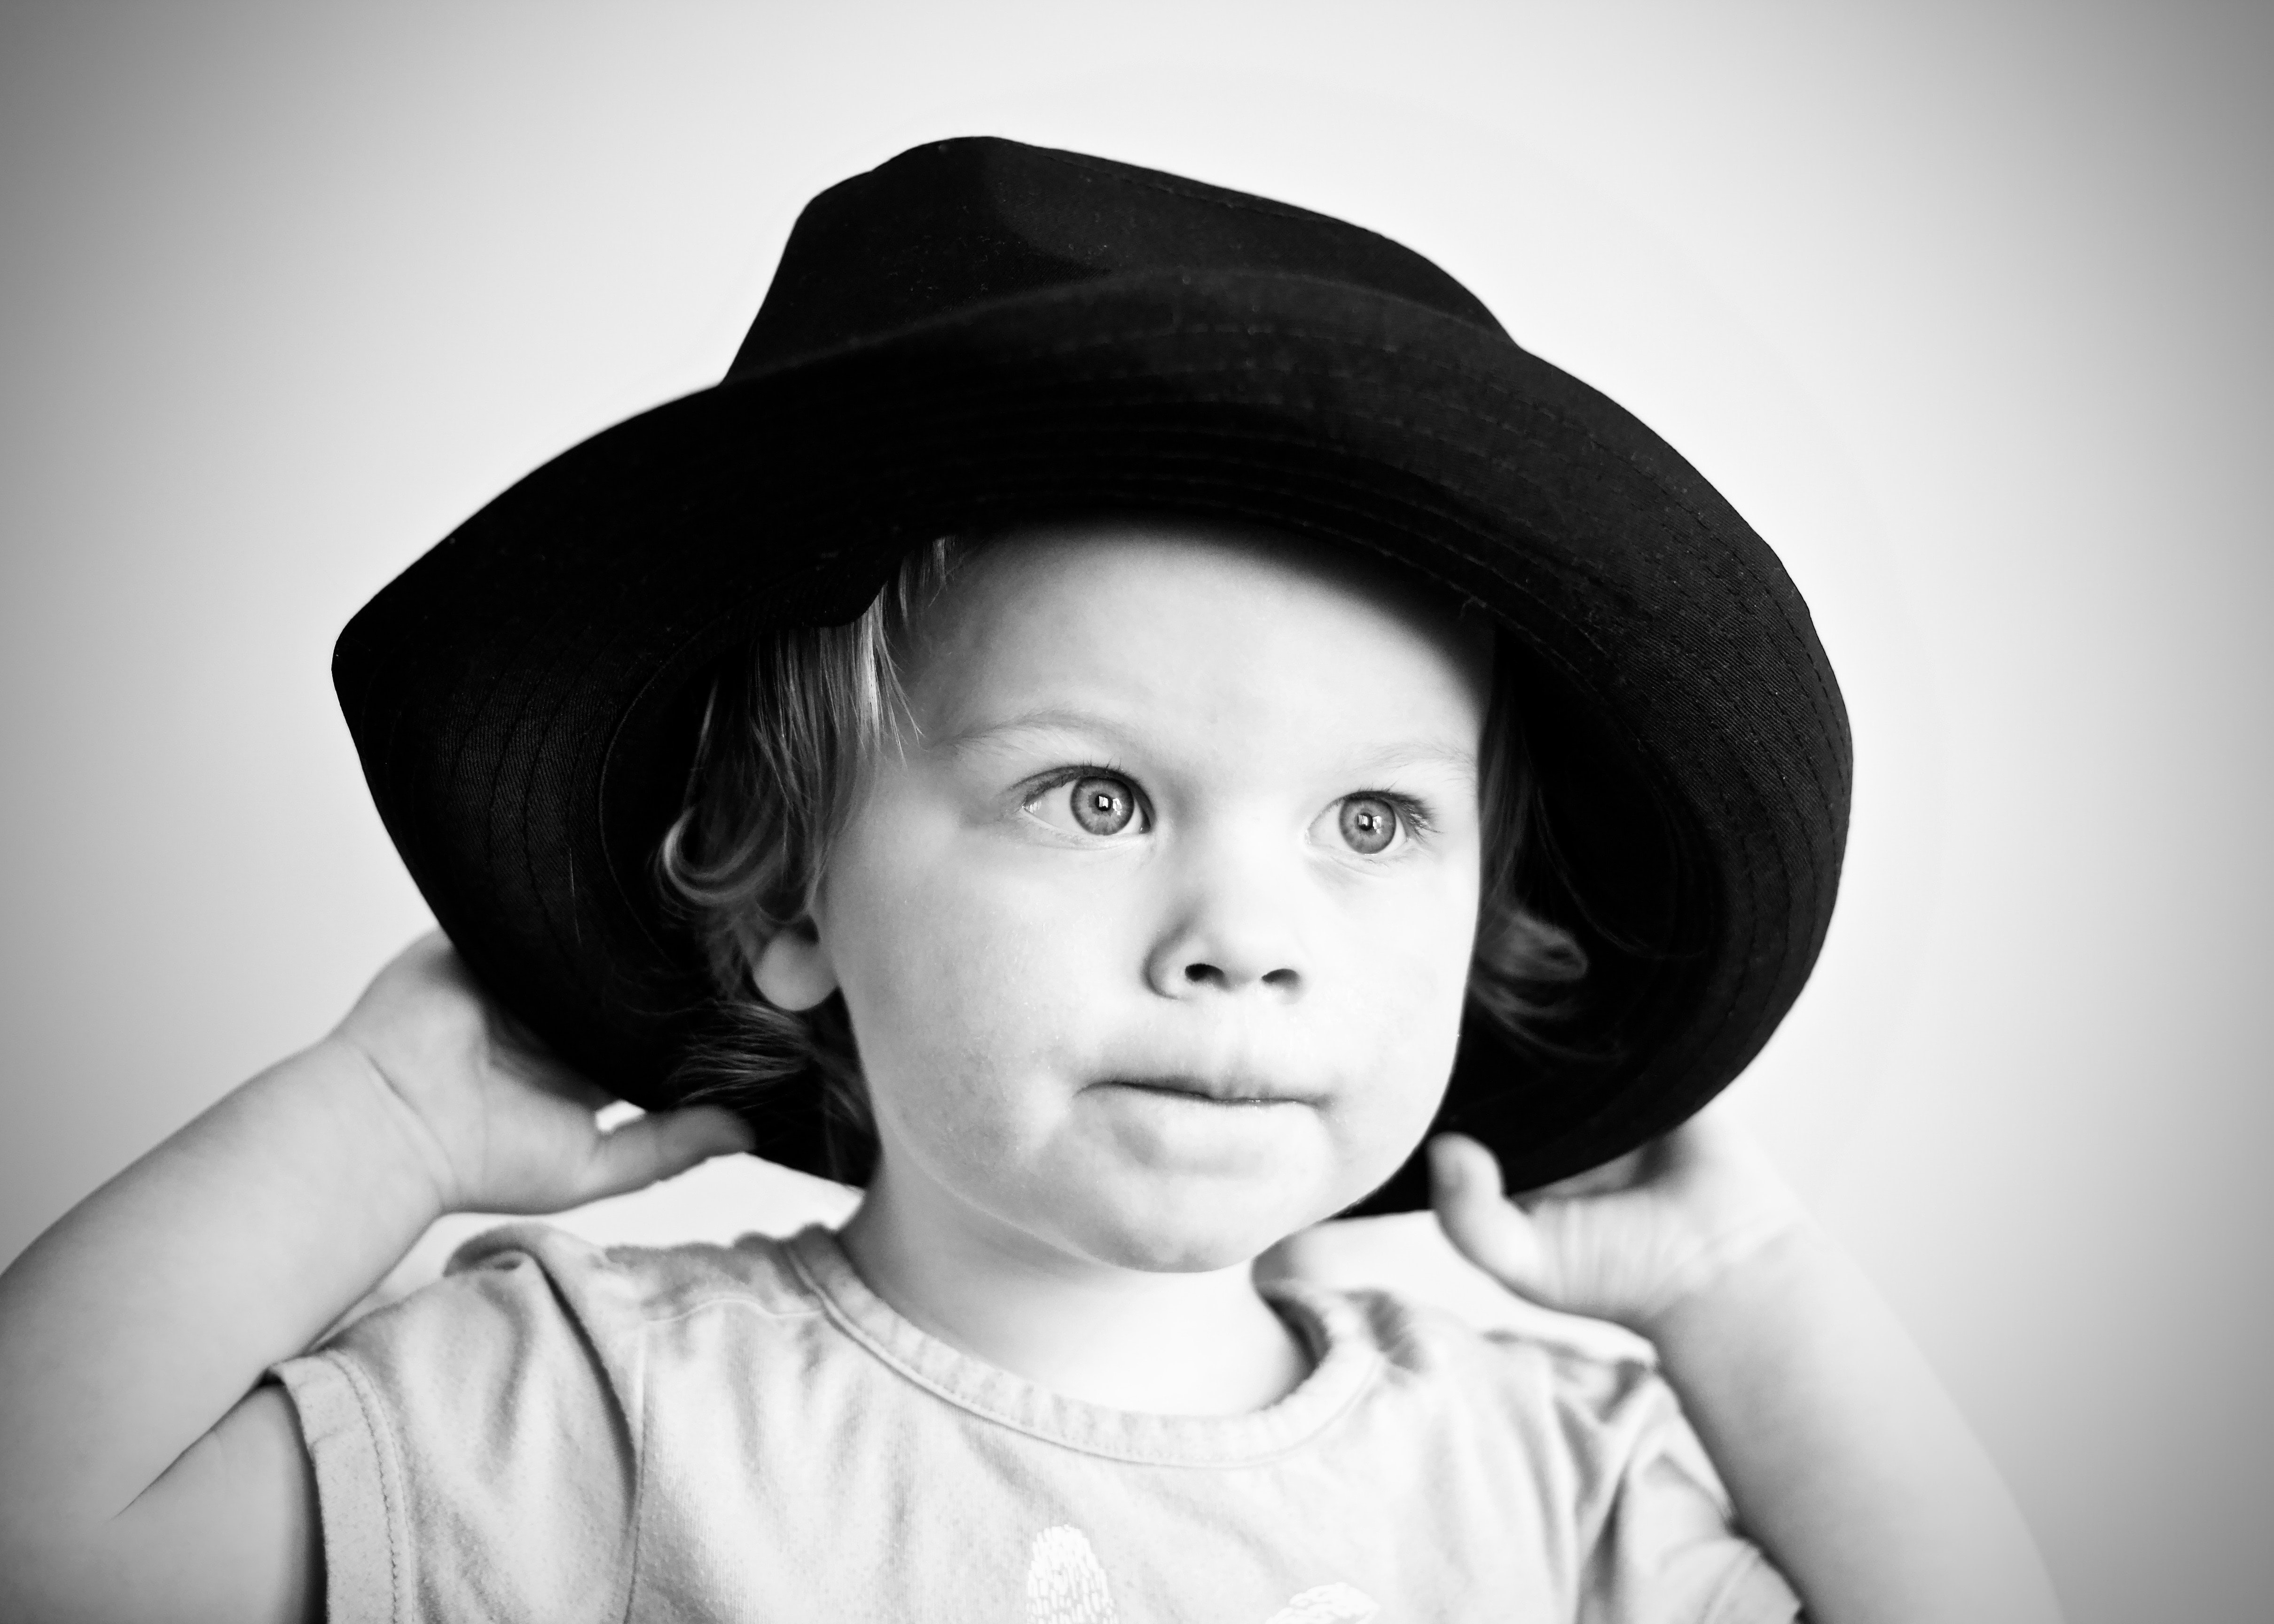 grayscale photography of girl with hat